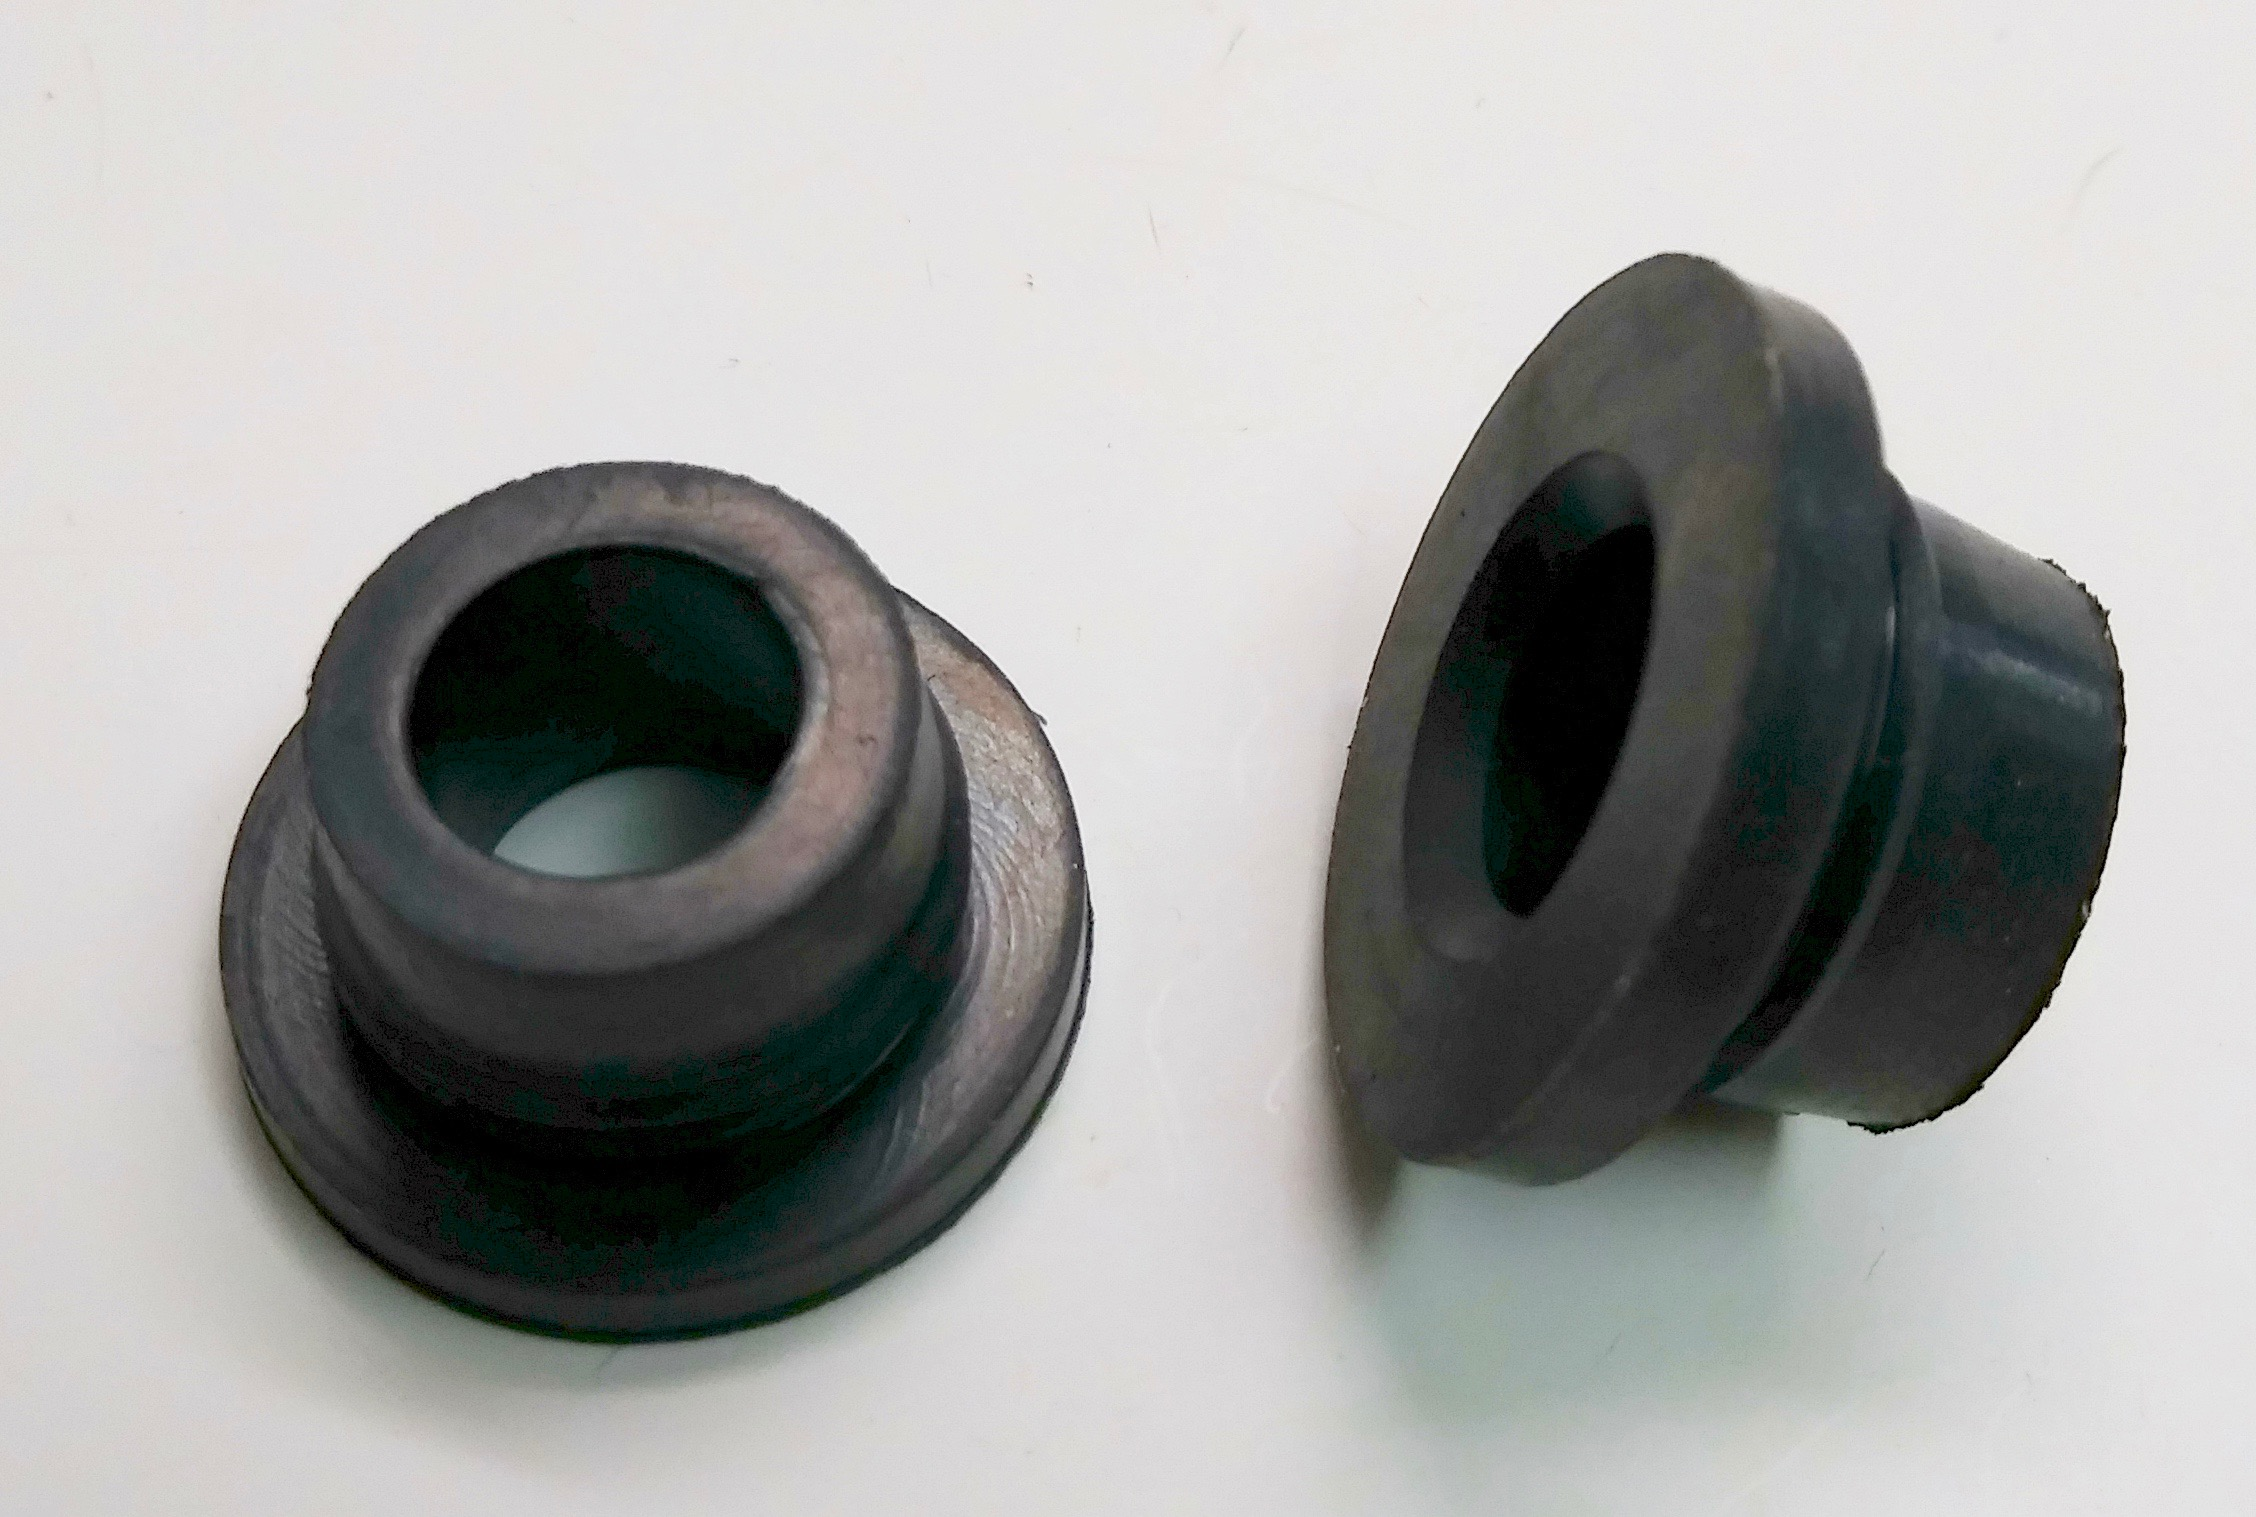 Rubber Grommet / Packing